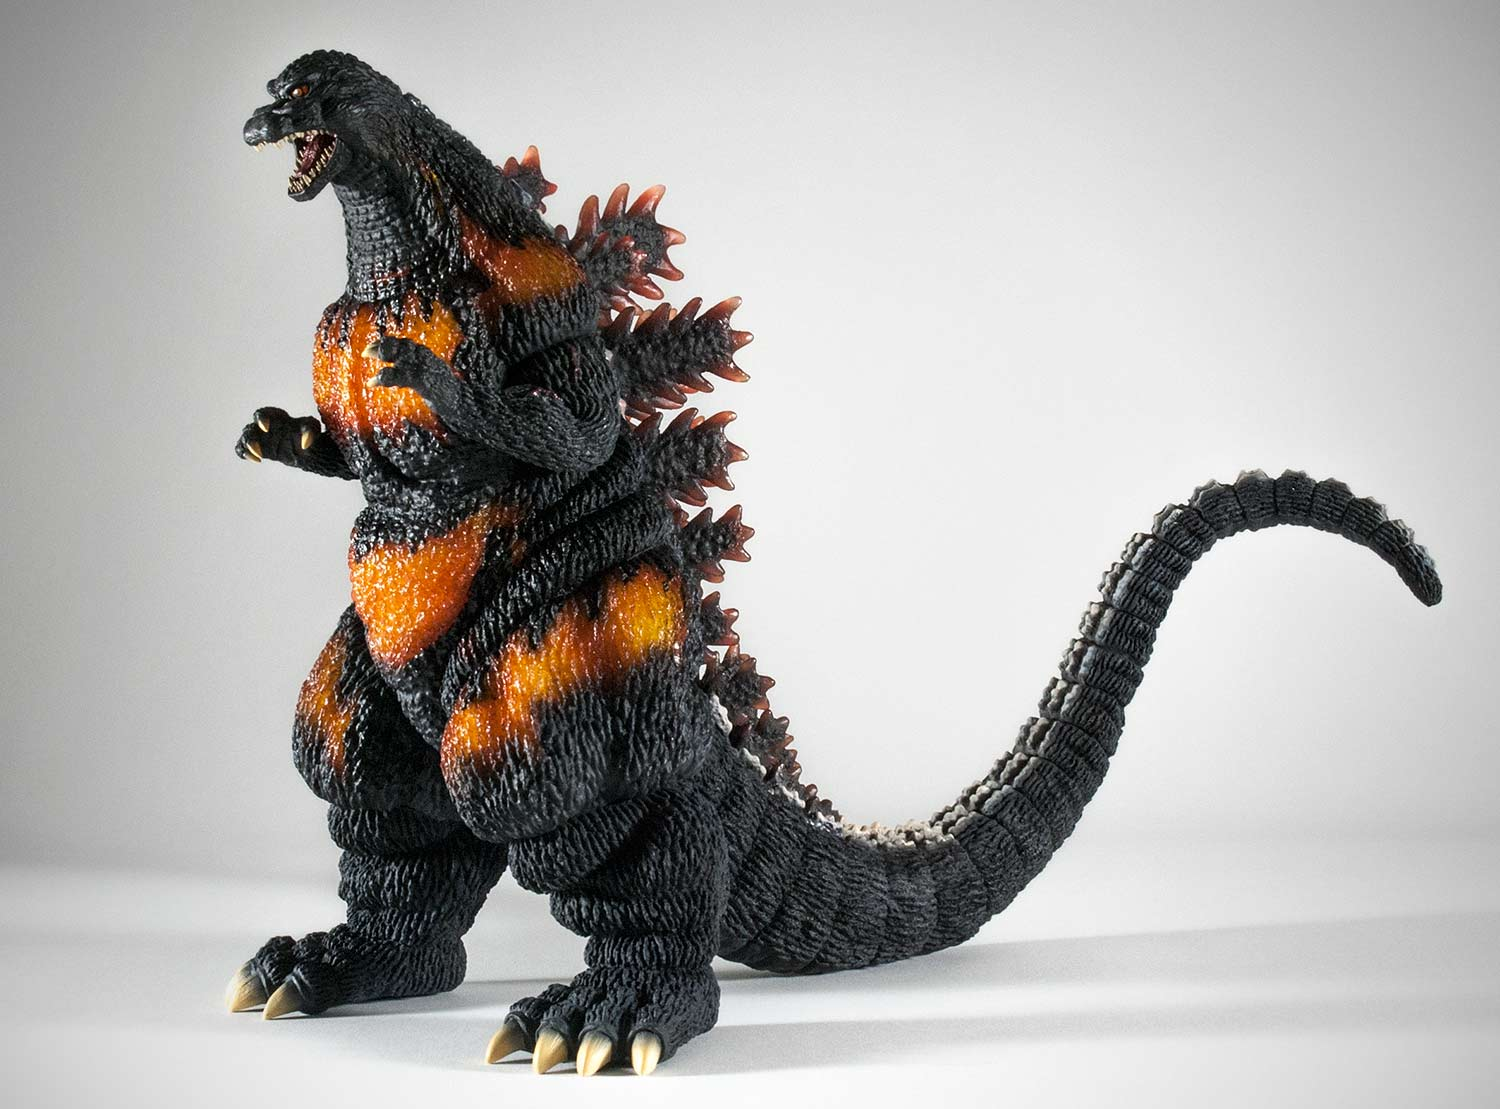 25cm Godzilla 1995 vinyl figure by X-Plus.